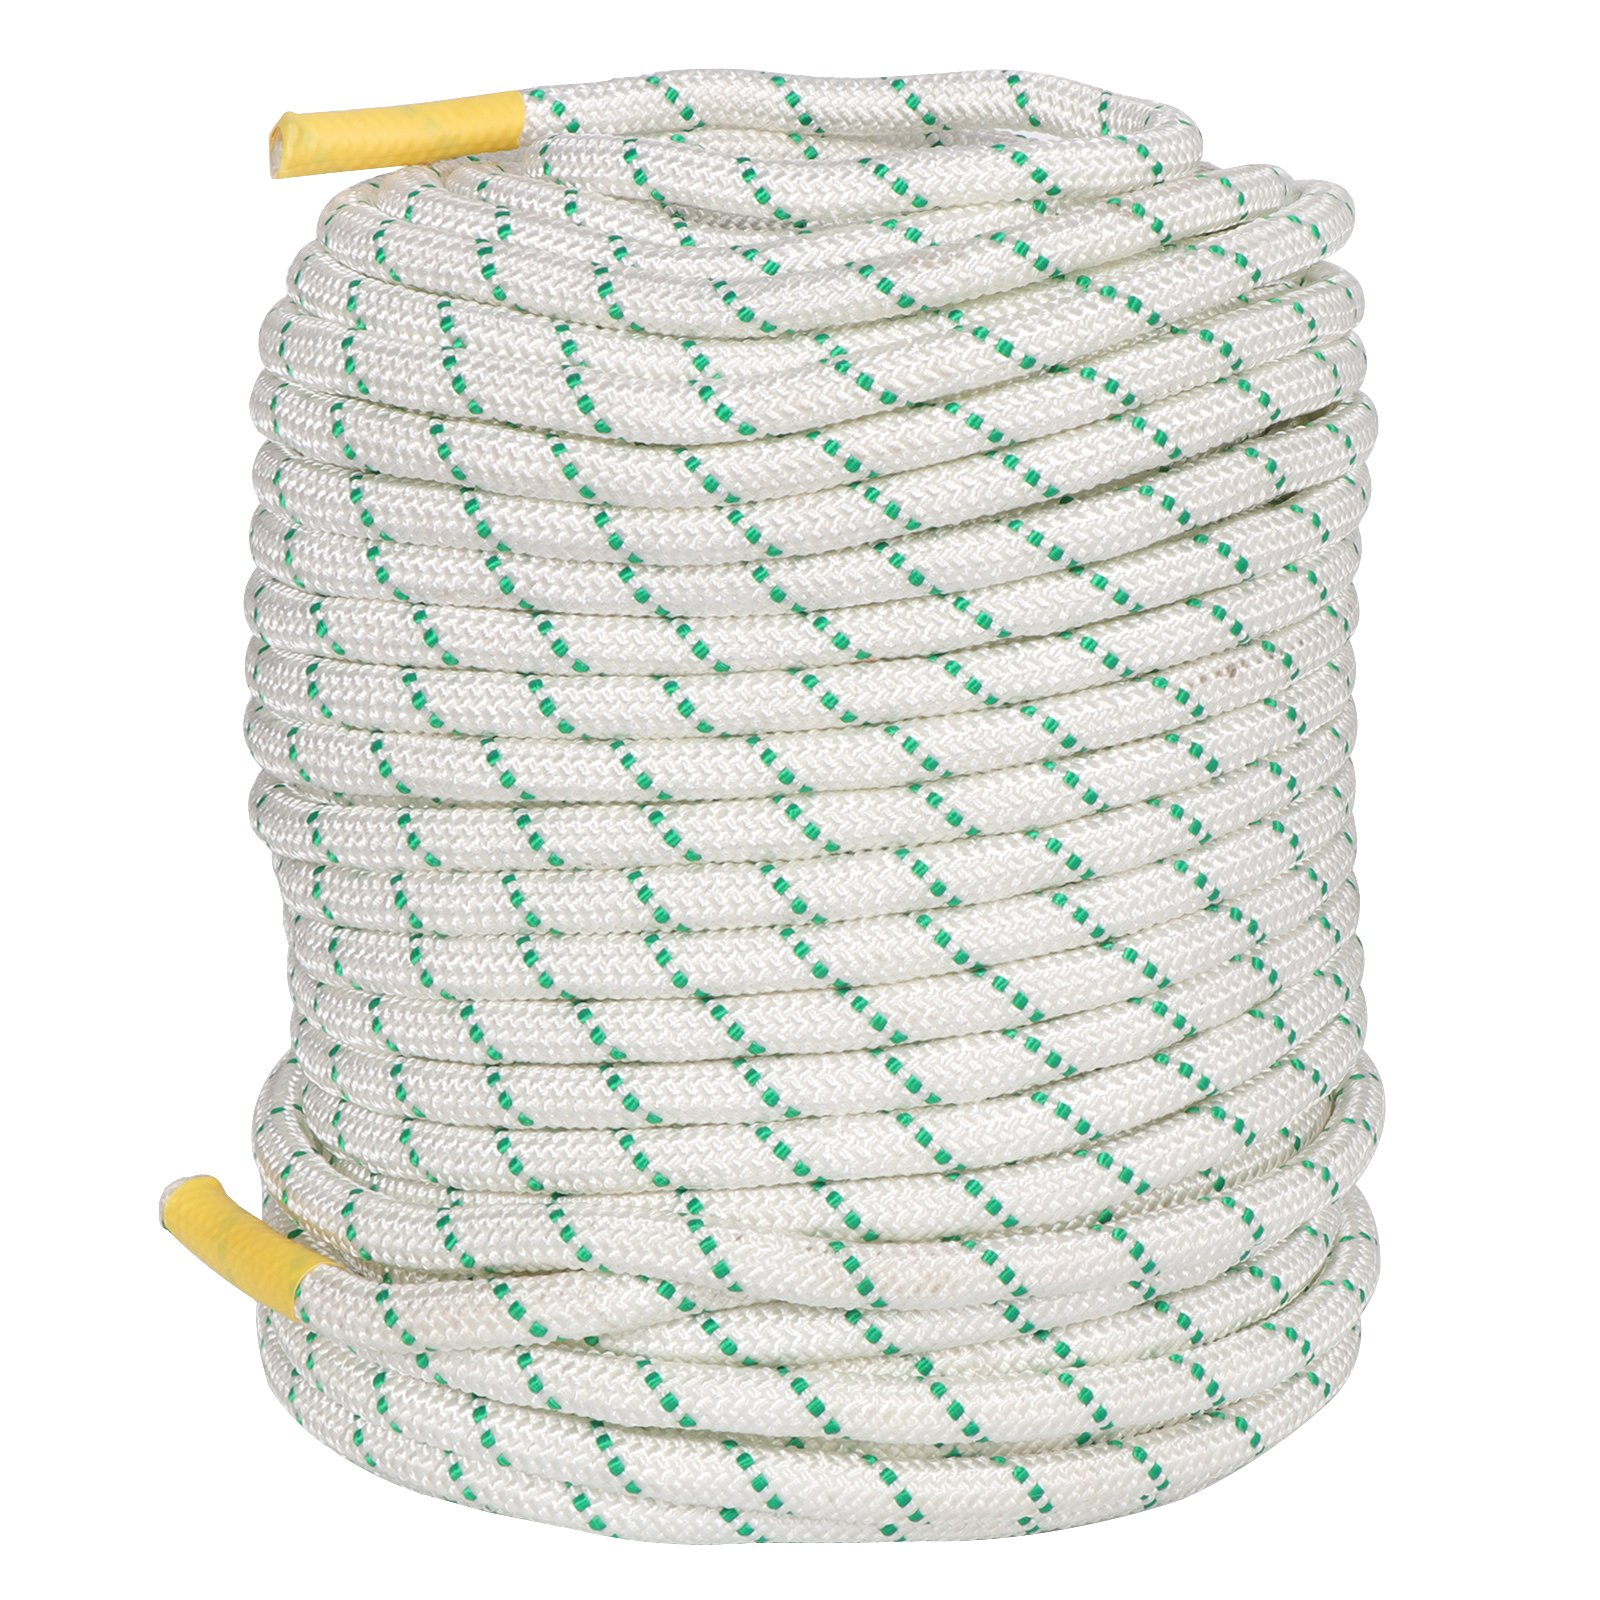 F2C General Purpose 2/5Inch x 151FT Caving Climbing Rope Double Braid Polyester Rope Safety Rope, Perfect for Tree Work, Cargo, Sailing, Rigging, Marine, Outdoor Sports, 5940Lbs Breaking Strength